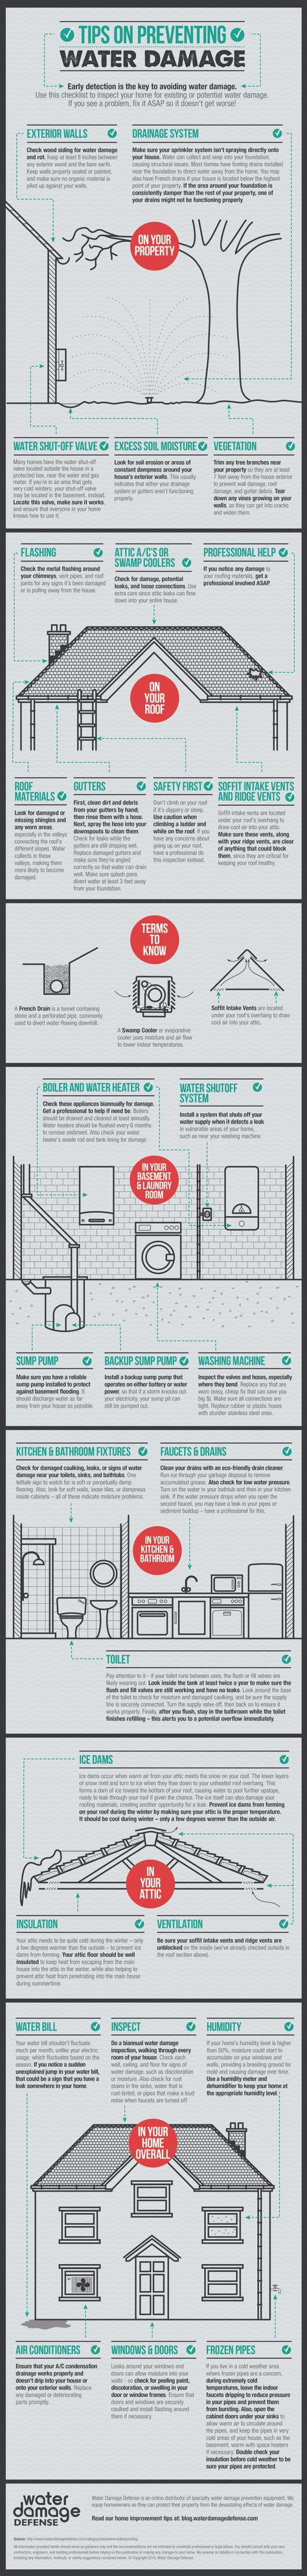 Tips On Preventing Water Damage To Your Home With Images Water Damage Prevention Real Estate Tips